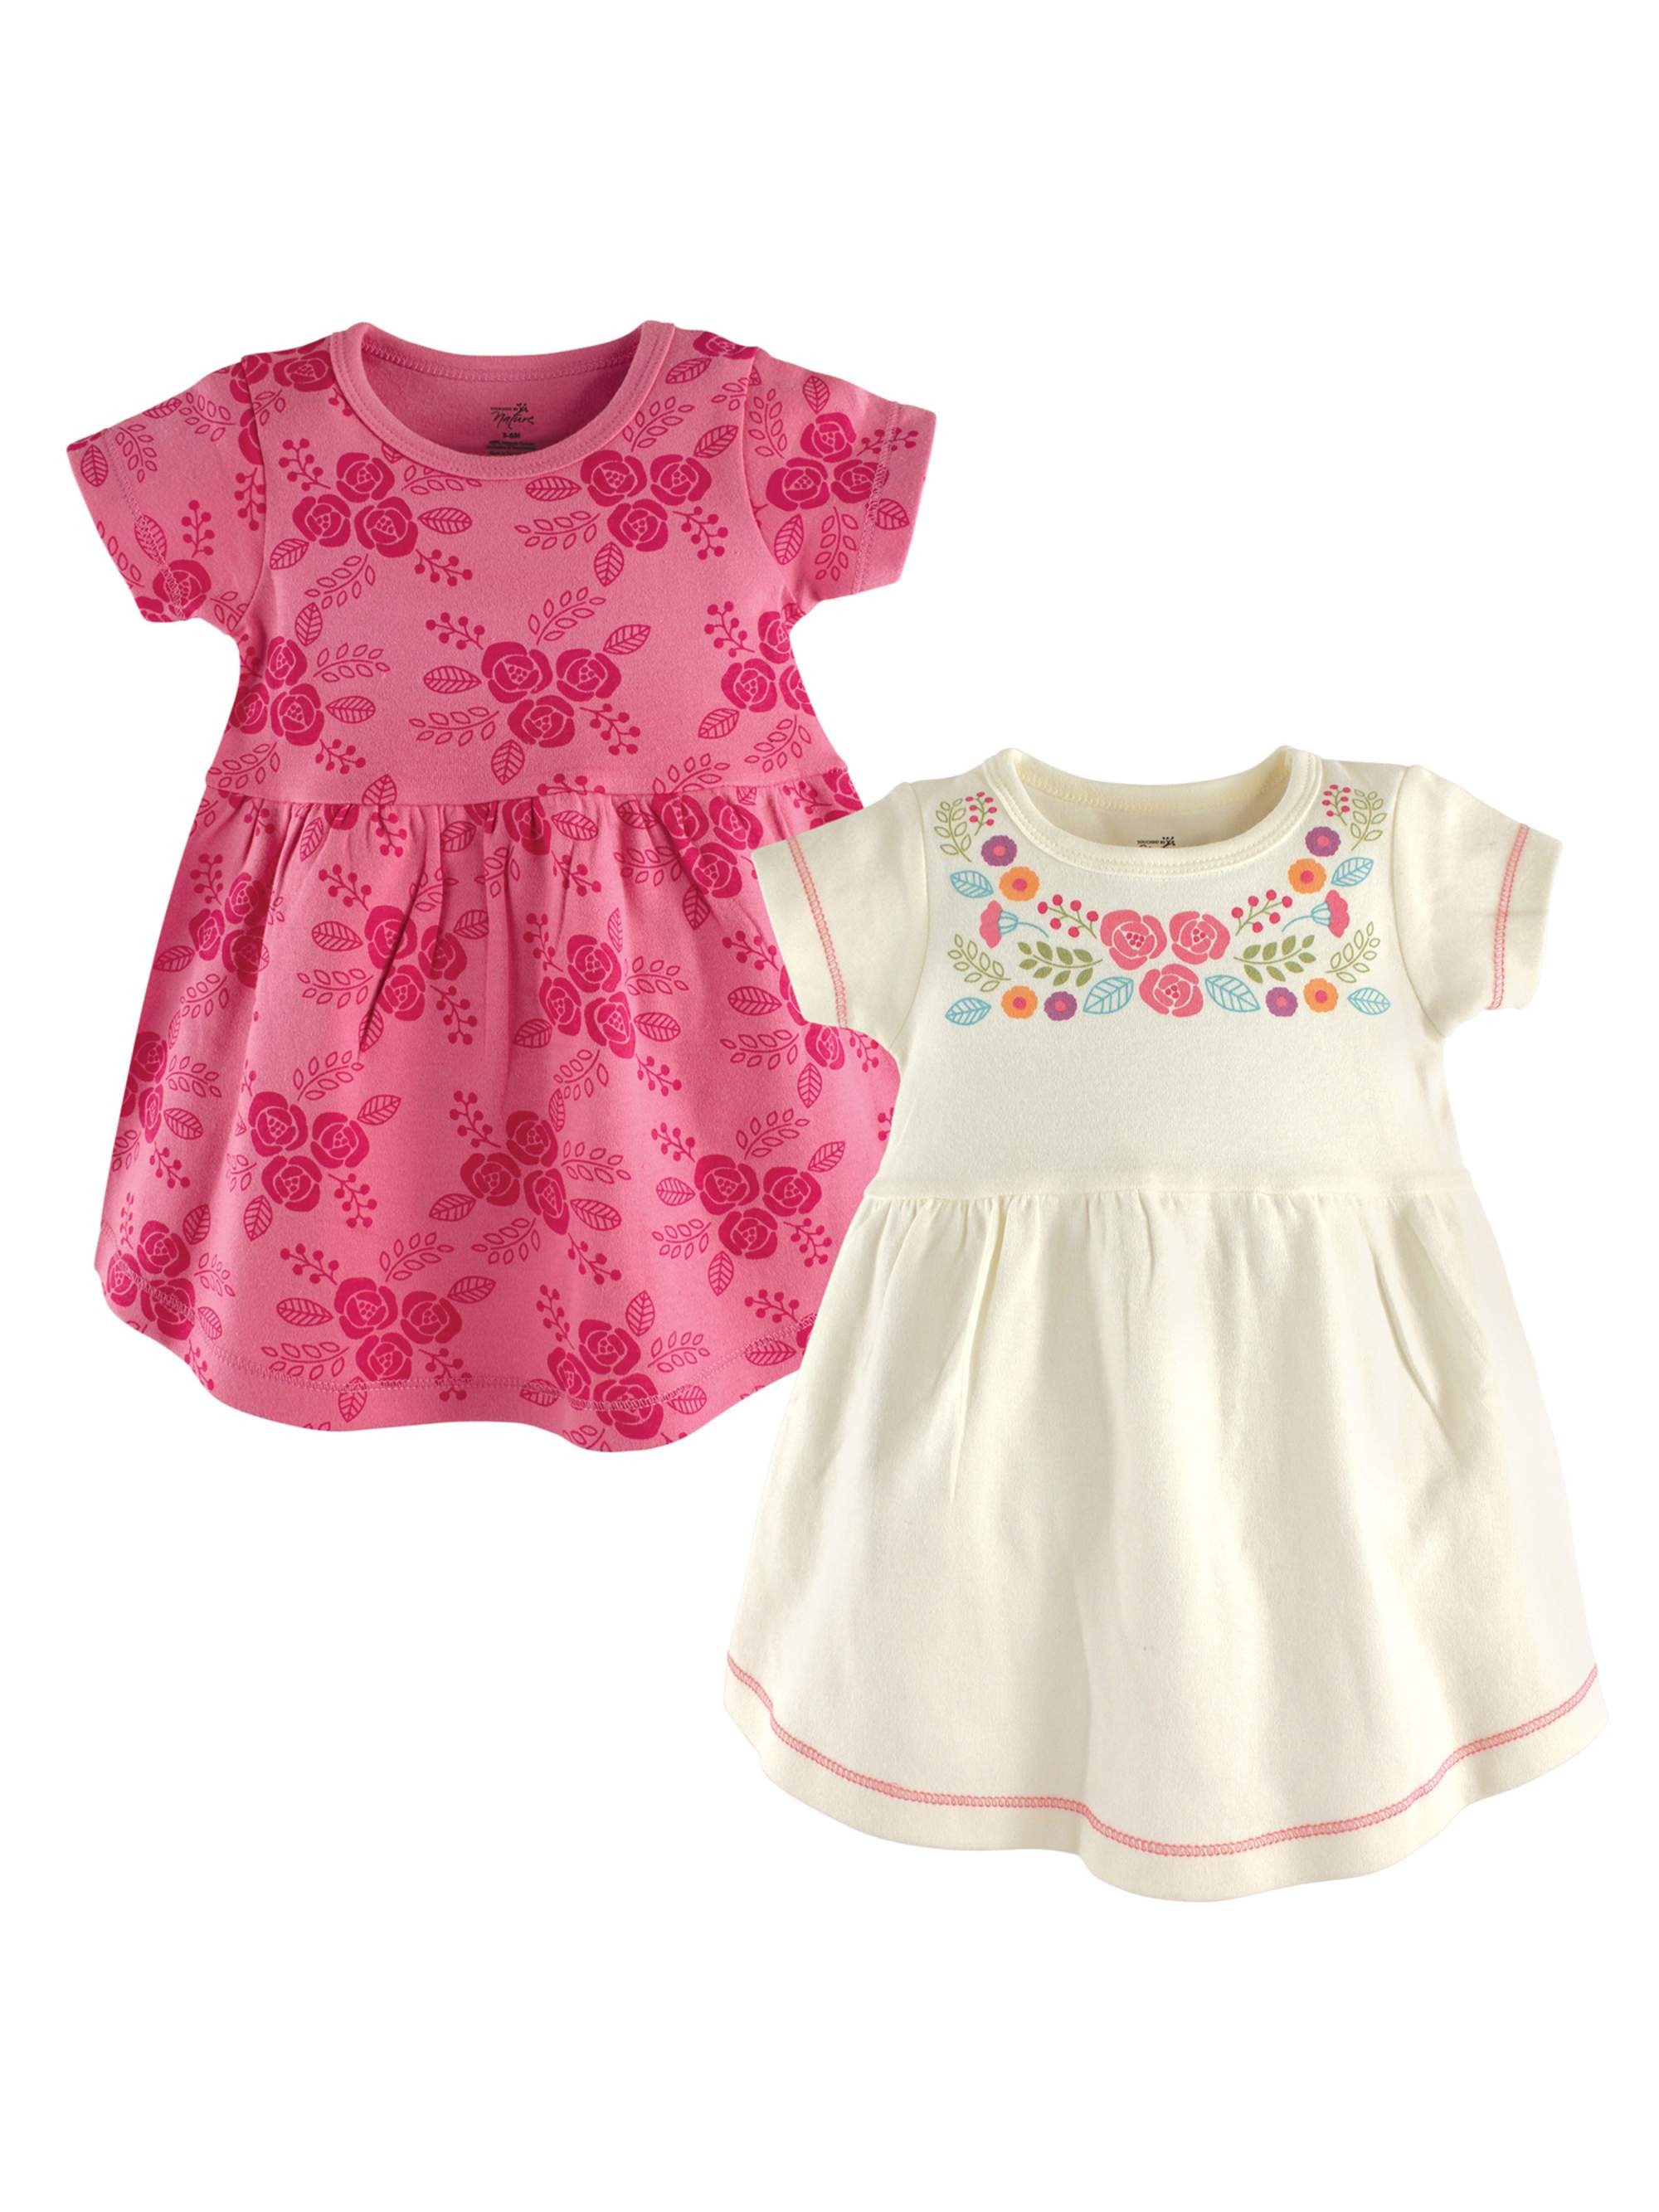 Touched By Nature Girl Toddler Organic Cotton Dresses Pink Botanical Long Sleev